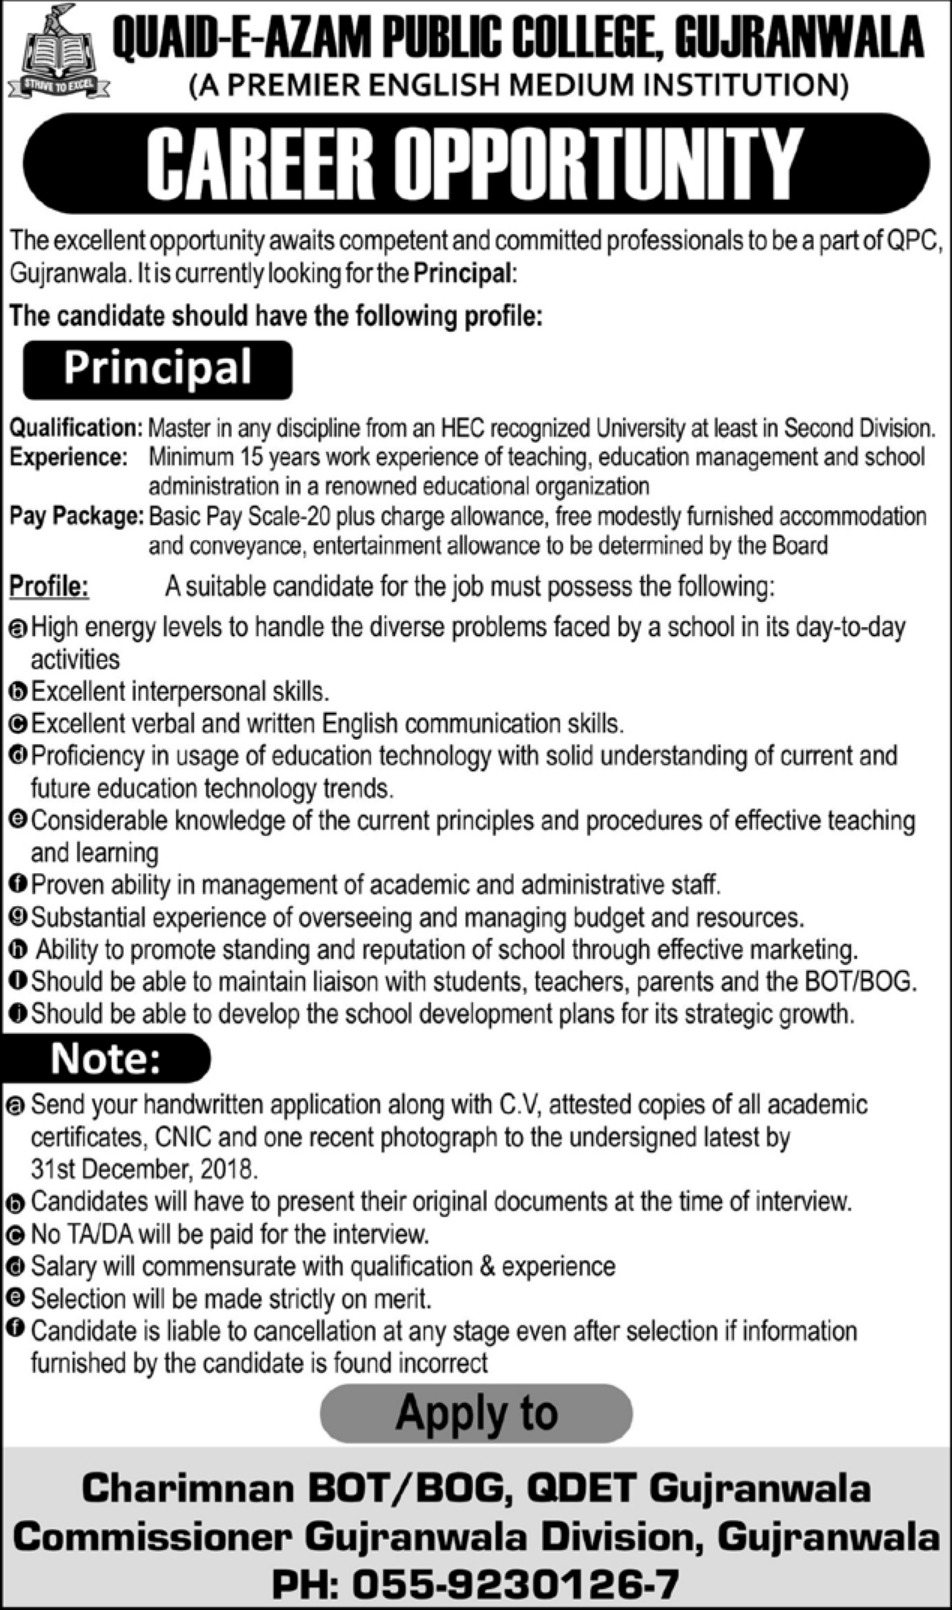 Quaid-e-Azam Public College Gujranwala Jobs 2018